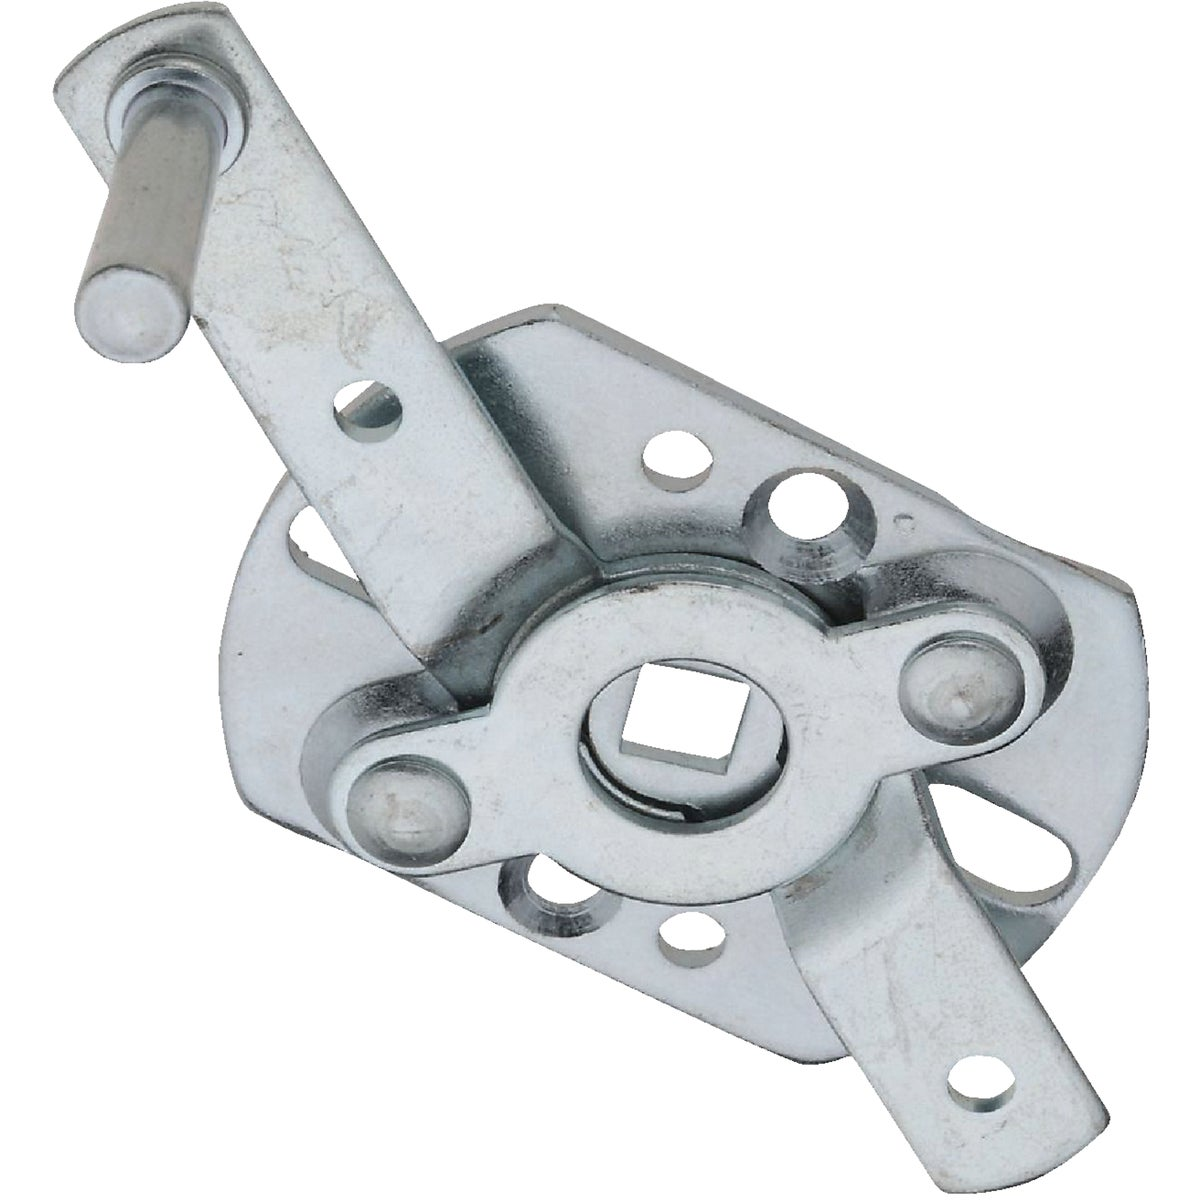 SWIVEL LOCK - N280701 by National Mfg Co